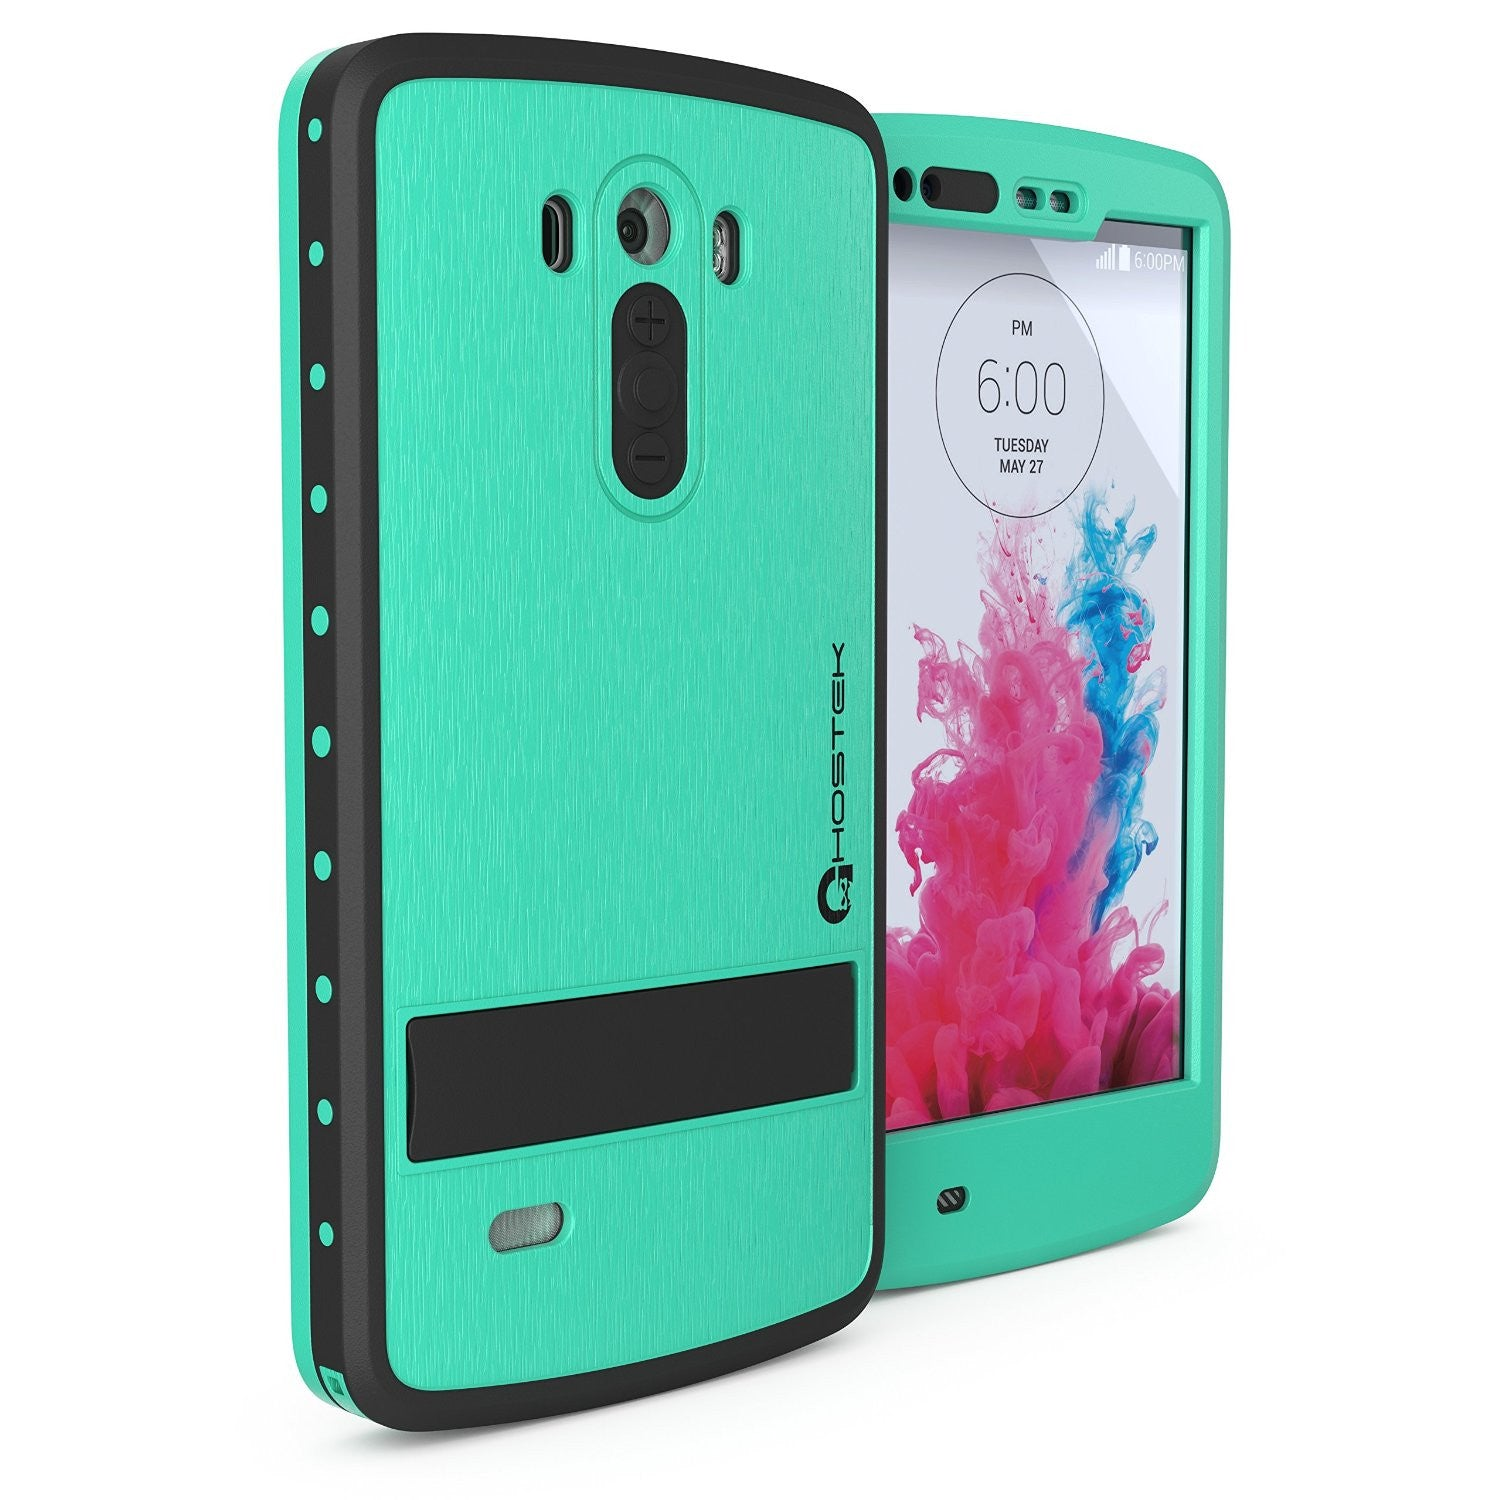 LG G3 ATOMIC Waterproof Dust proof Dirt proof Snow proof ...